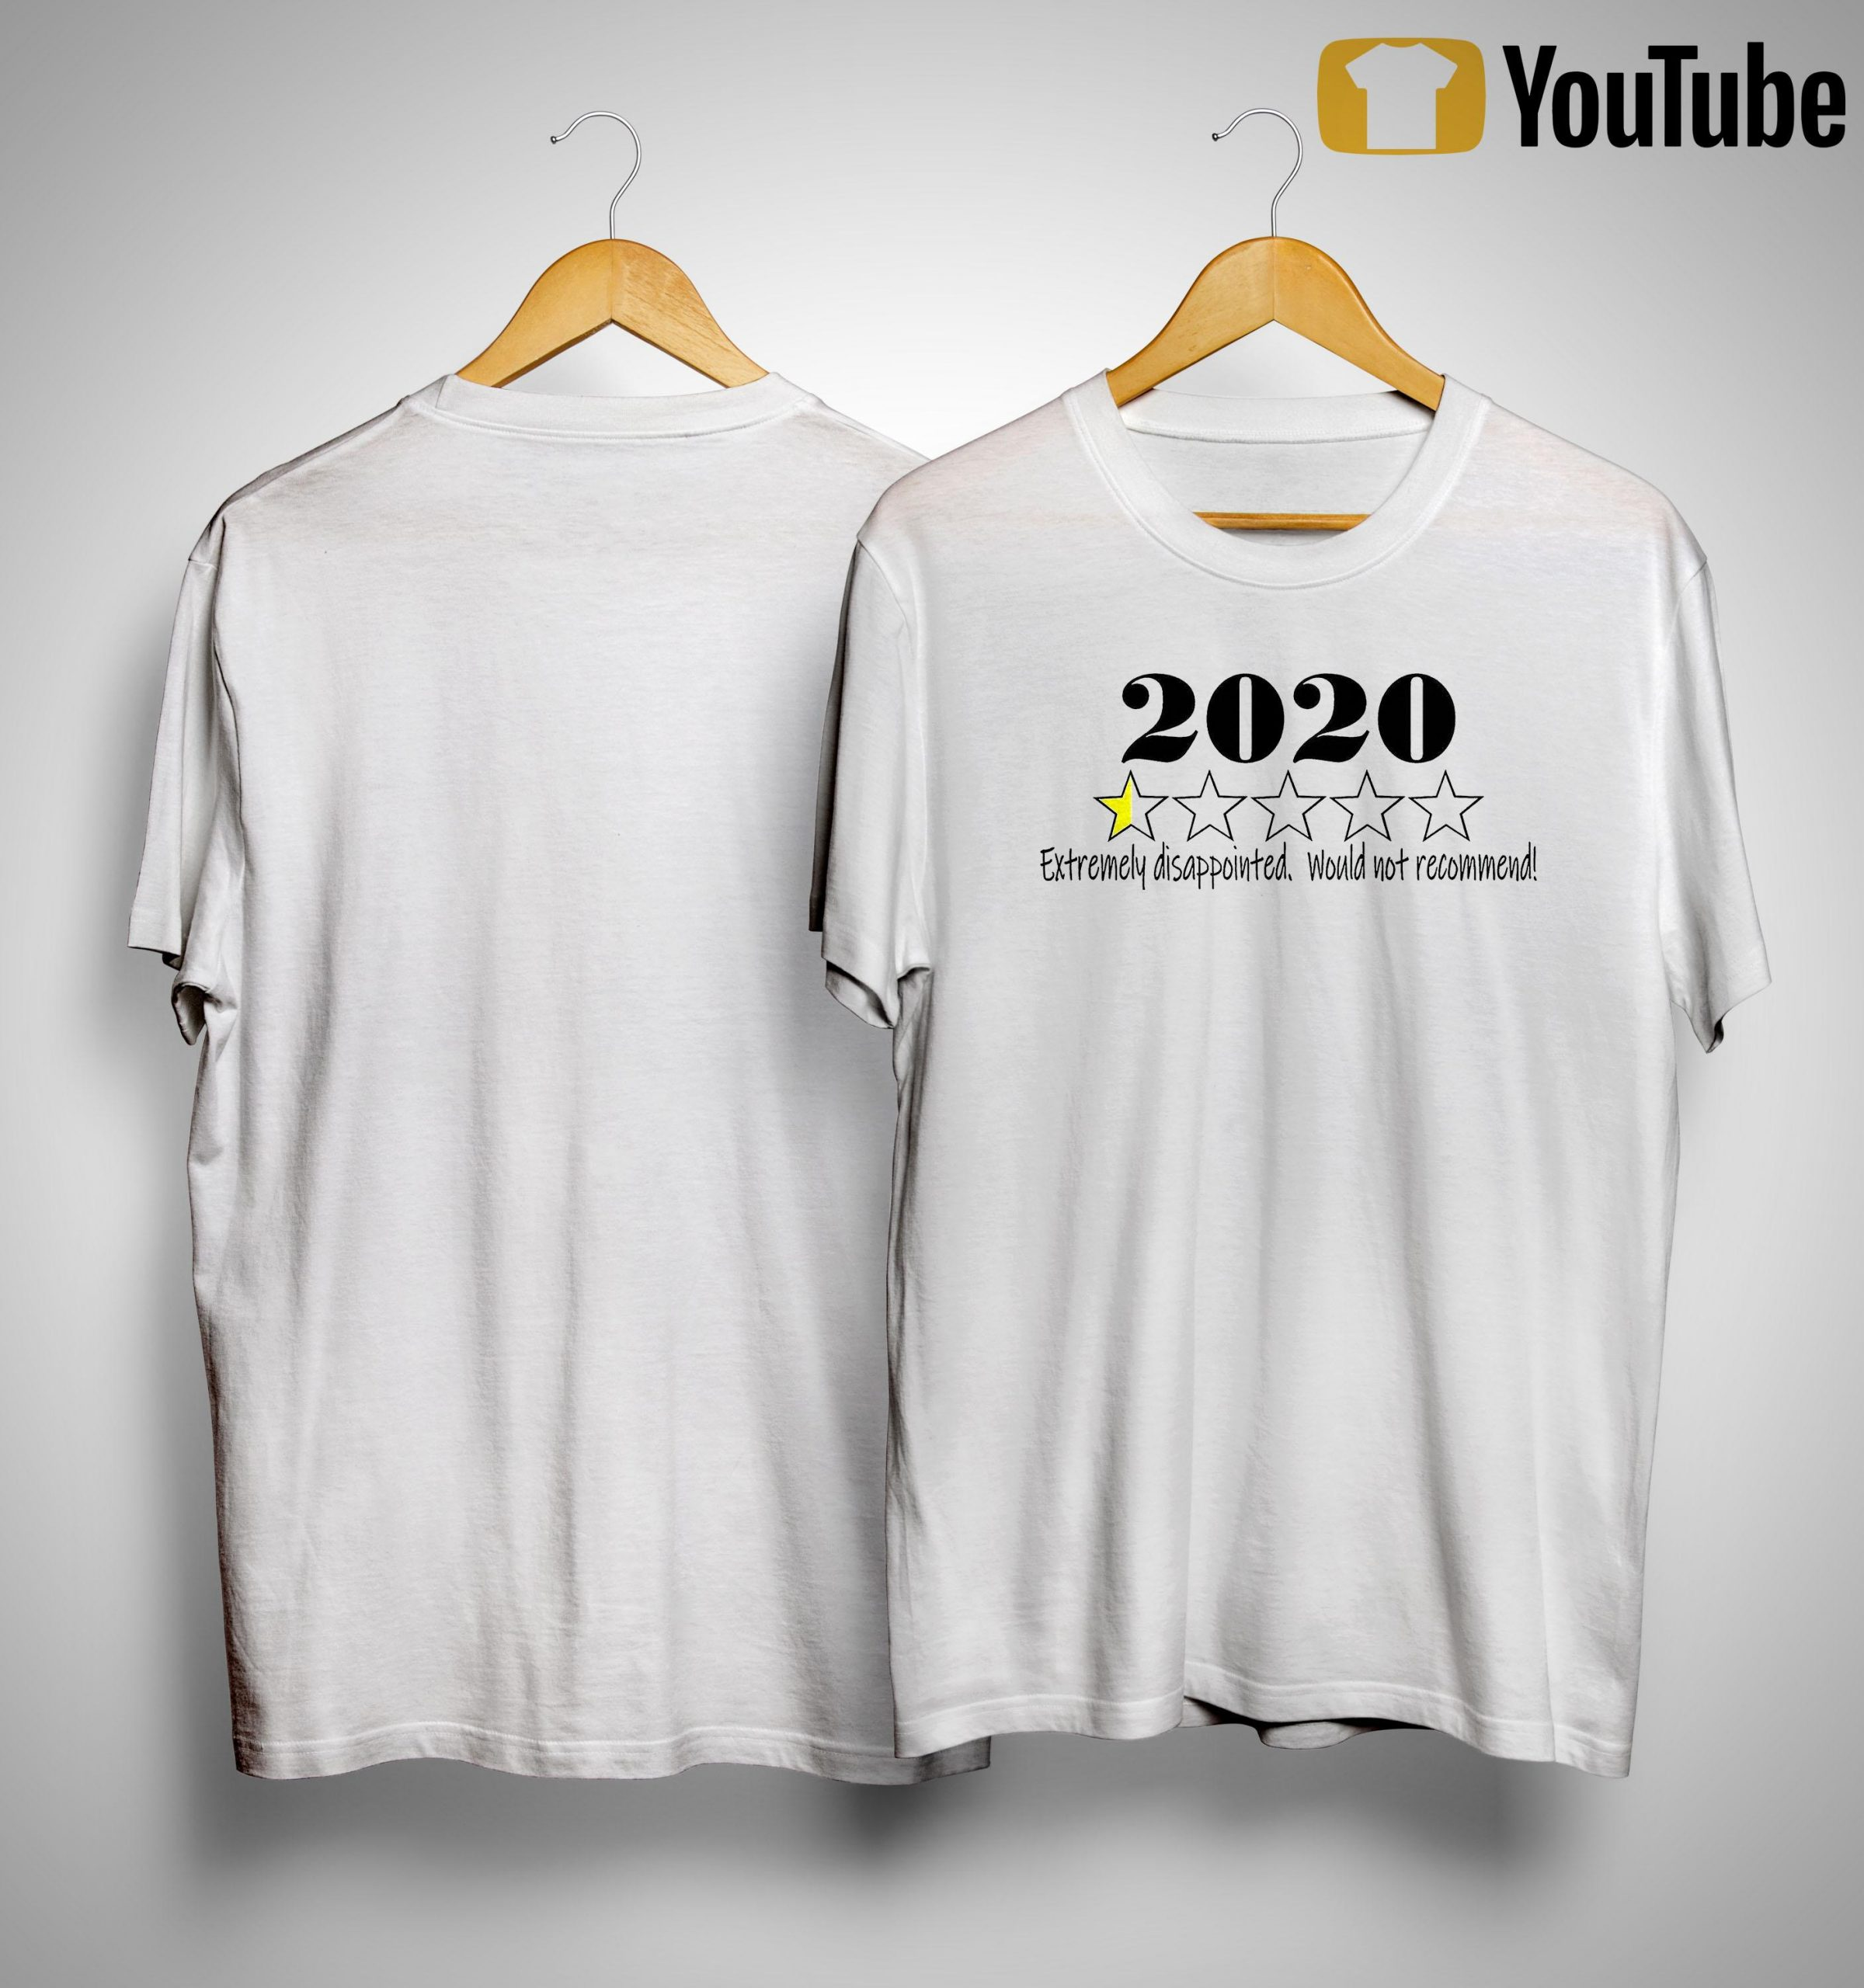 2020 Extremely Disappointed Would Not Recommend Shirt